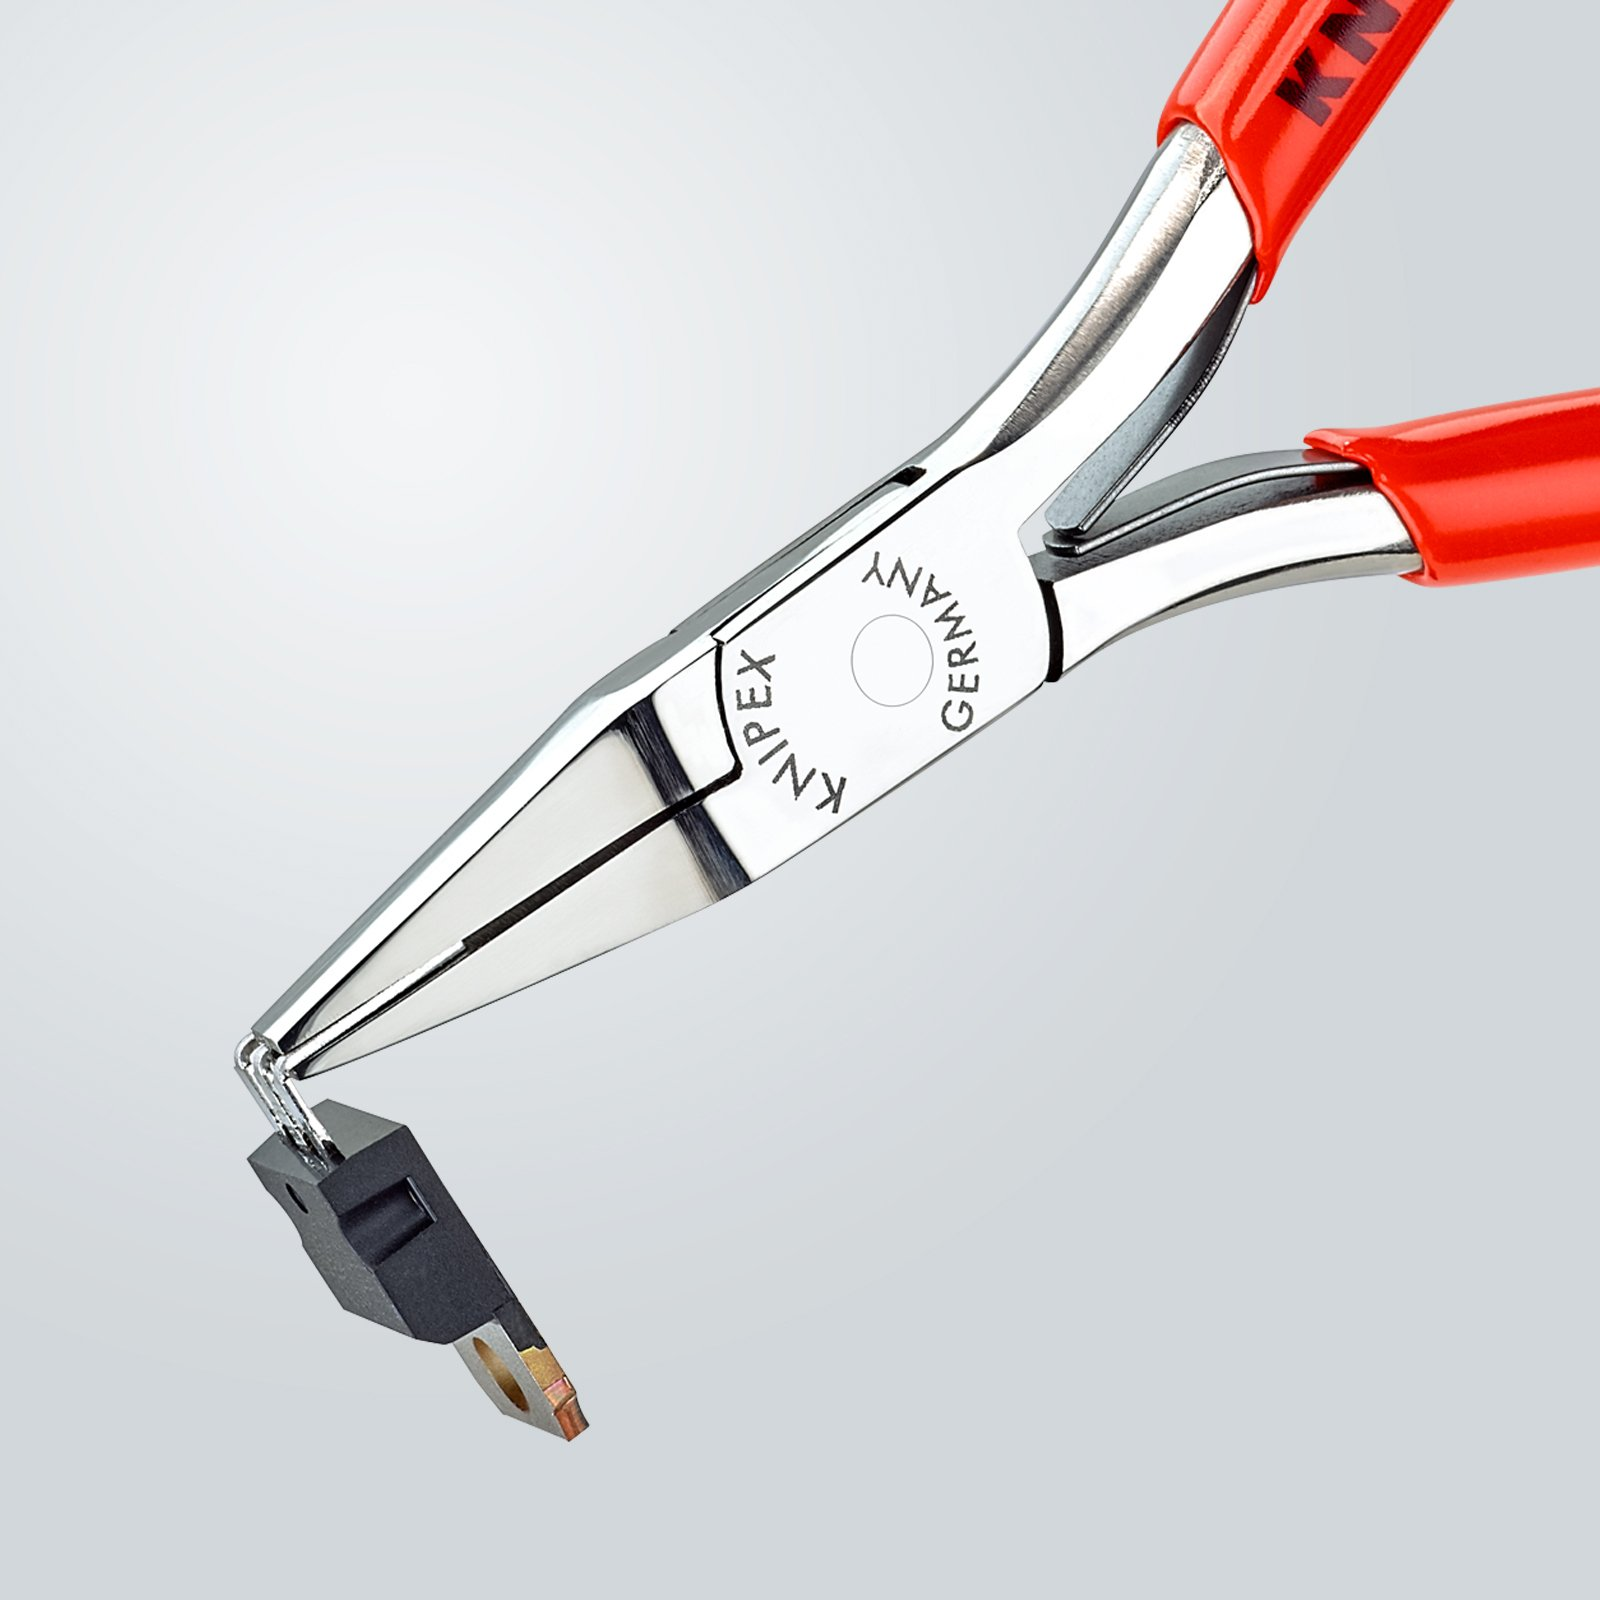 Knipex 35 11 115 Electronics Pliers